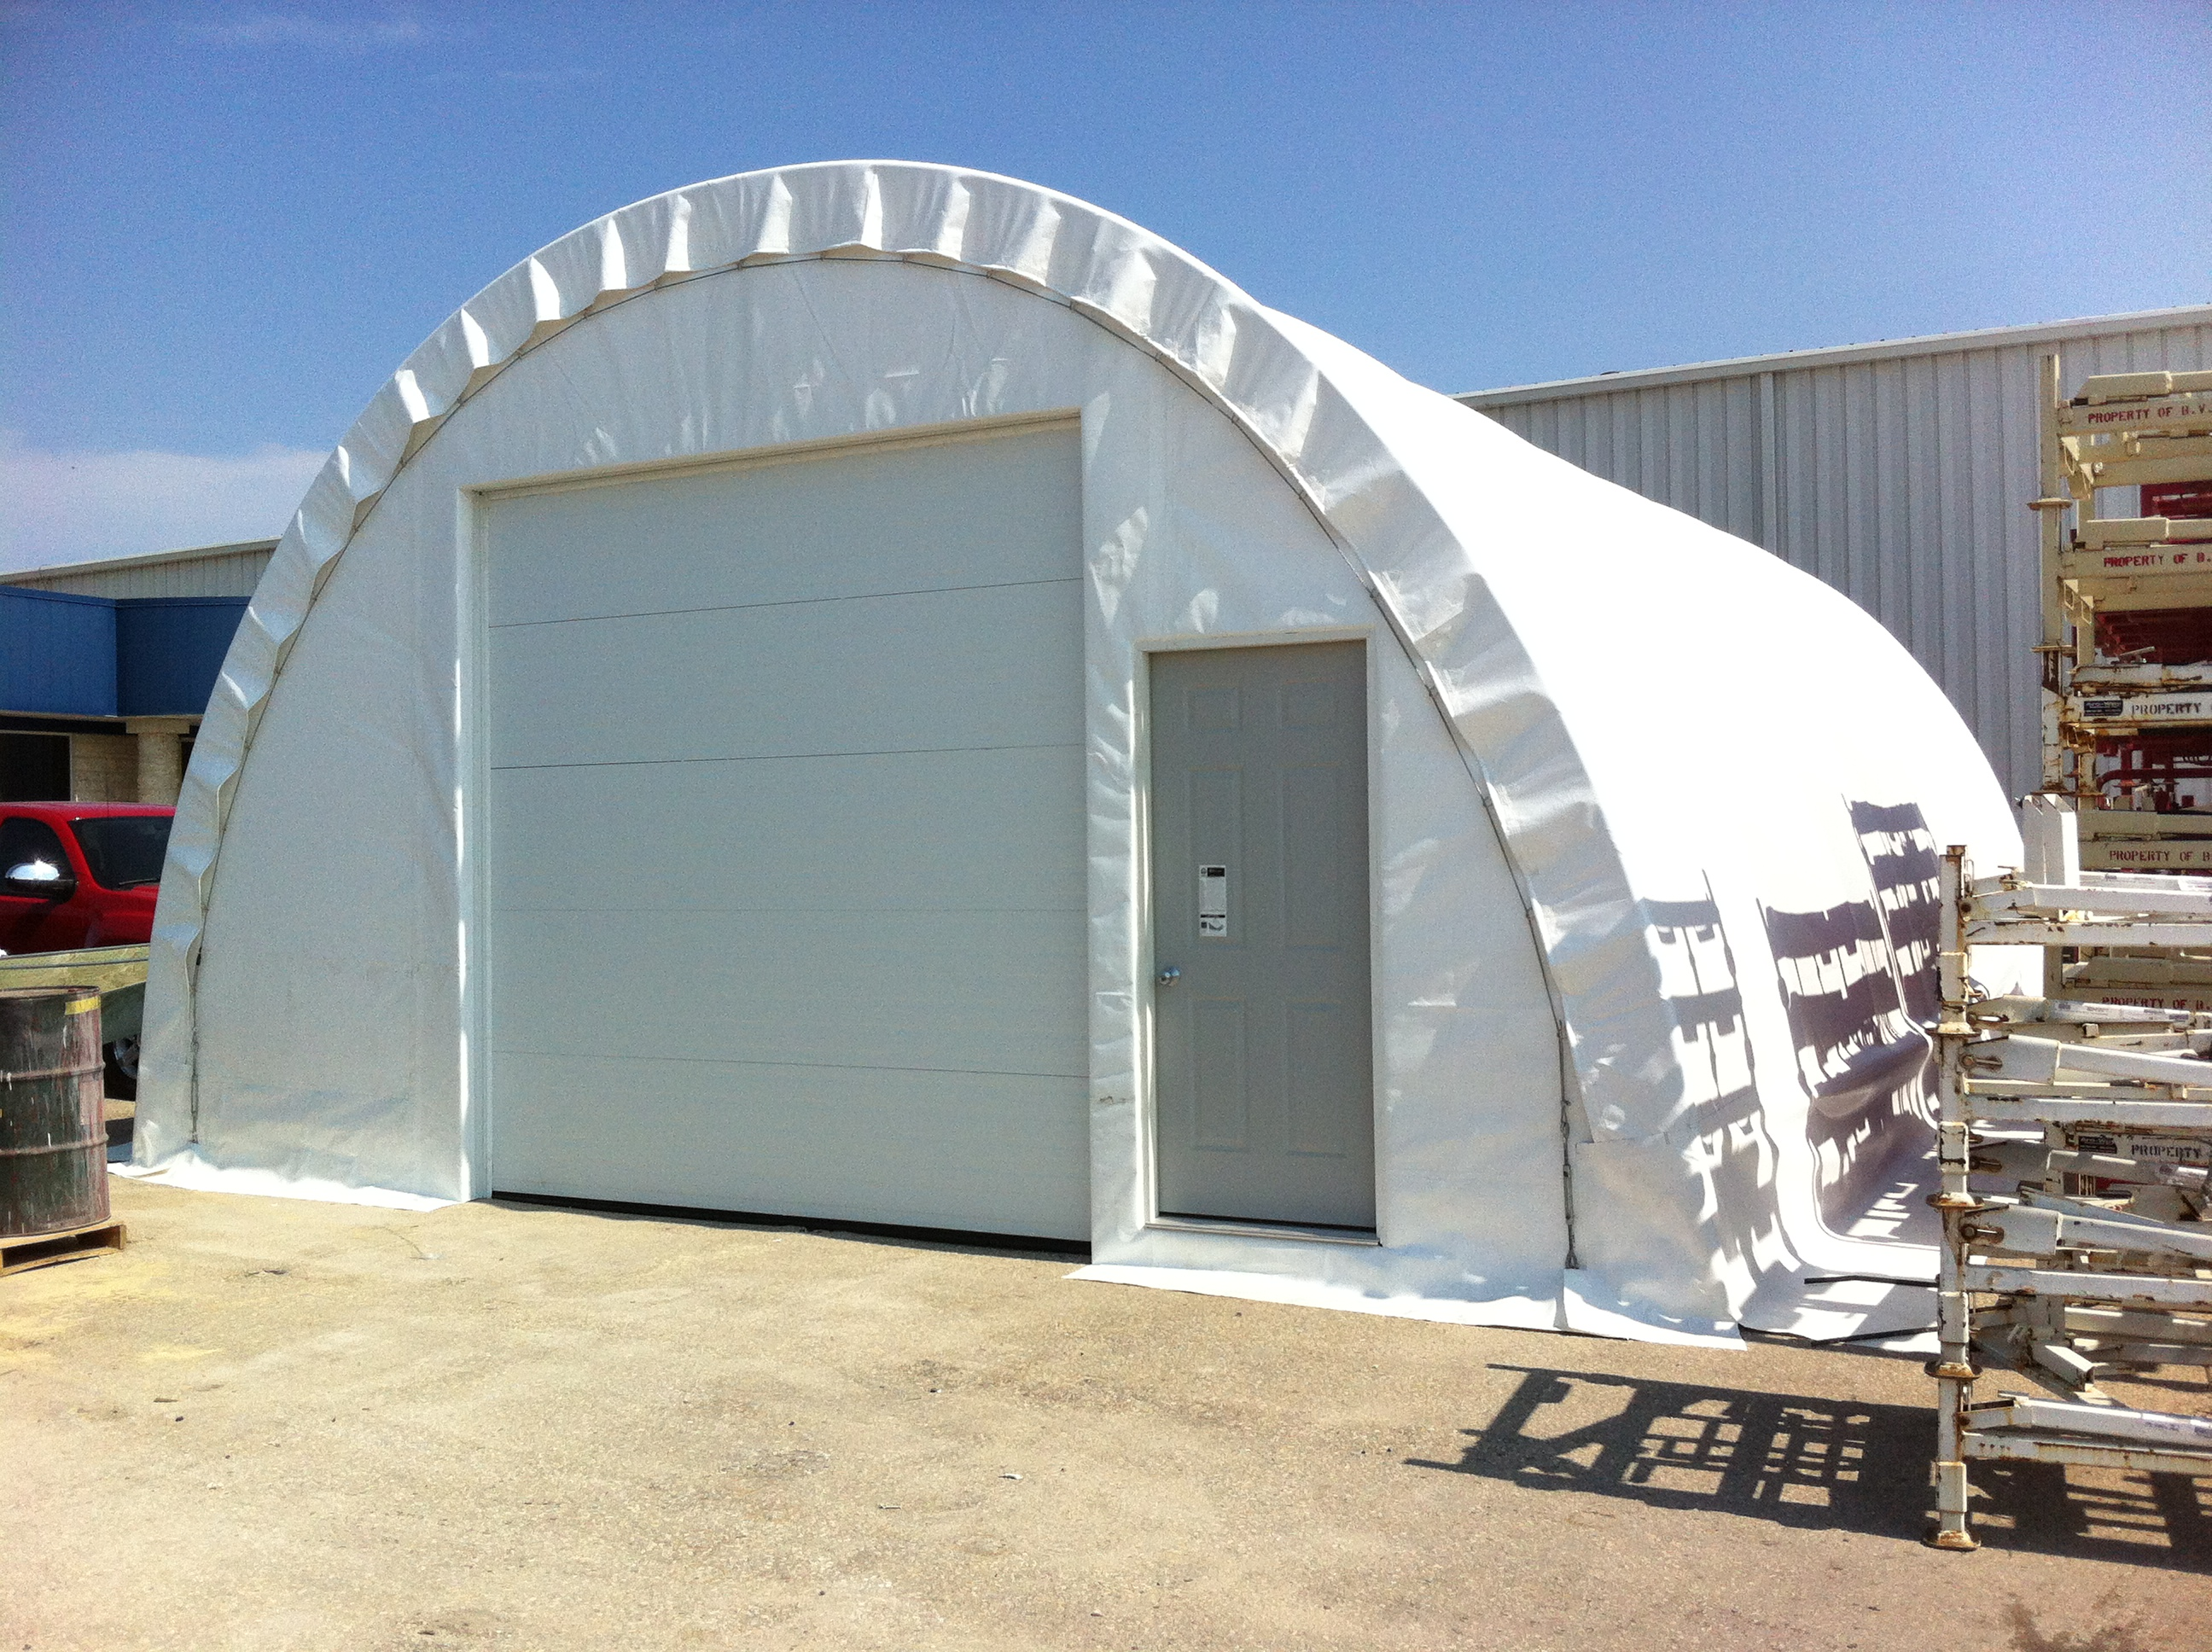 Kinds Of Shelters : Wide shelter envirodome and shelters